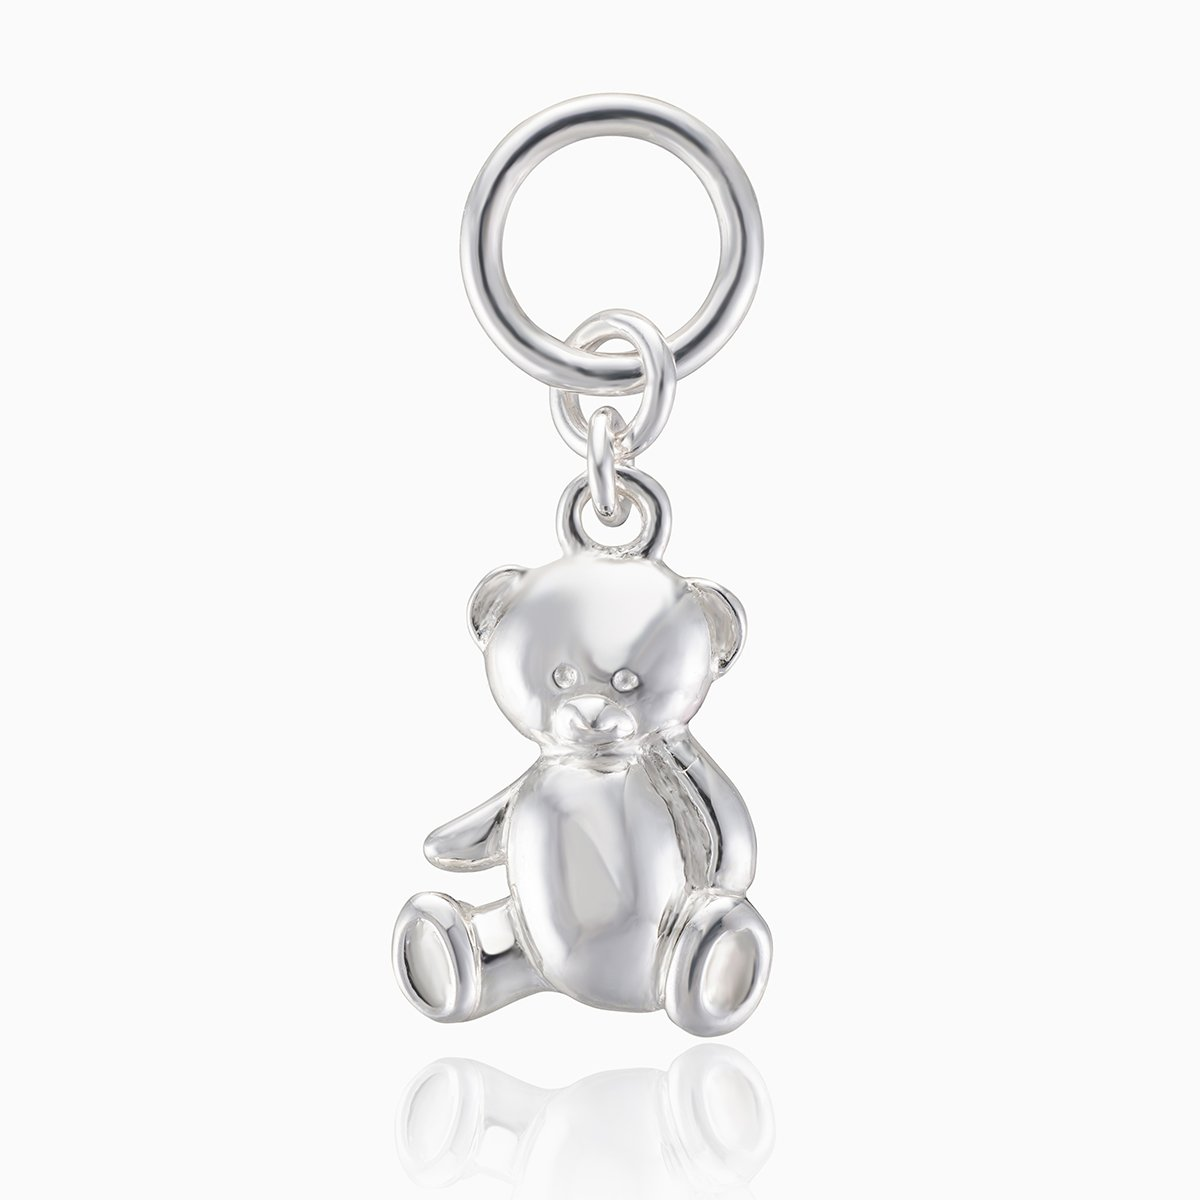 Product title: Teddy Charm, product type: Charm